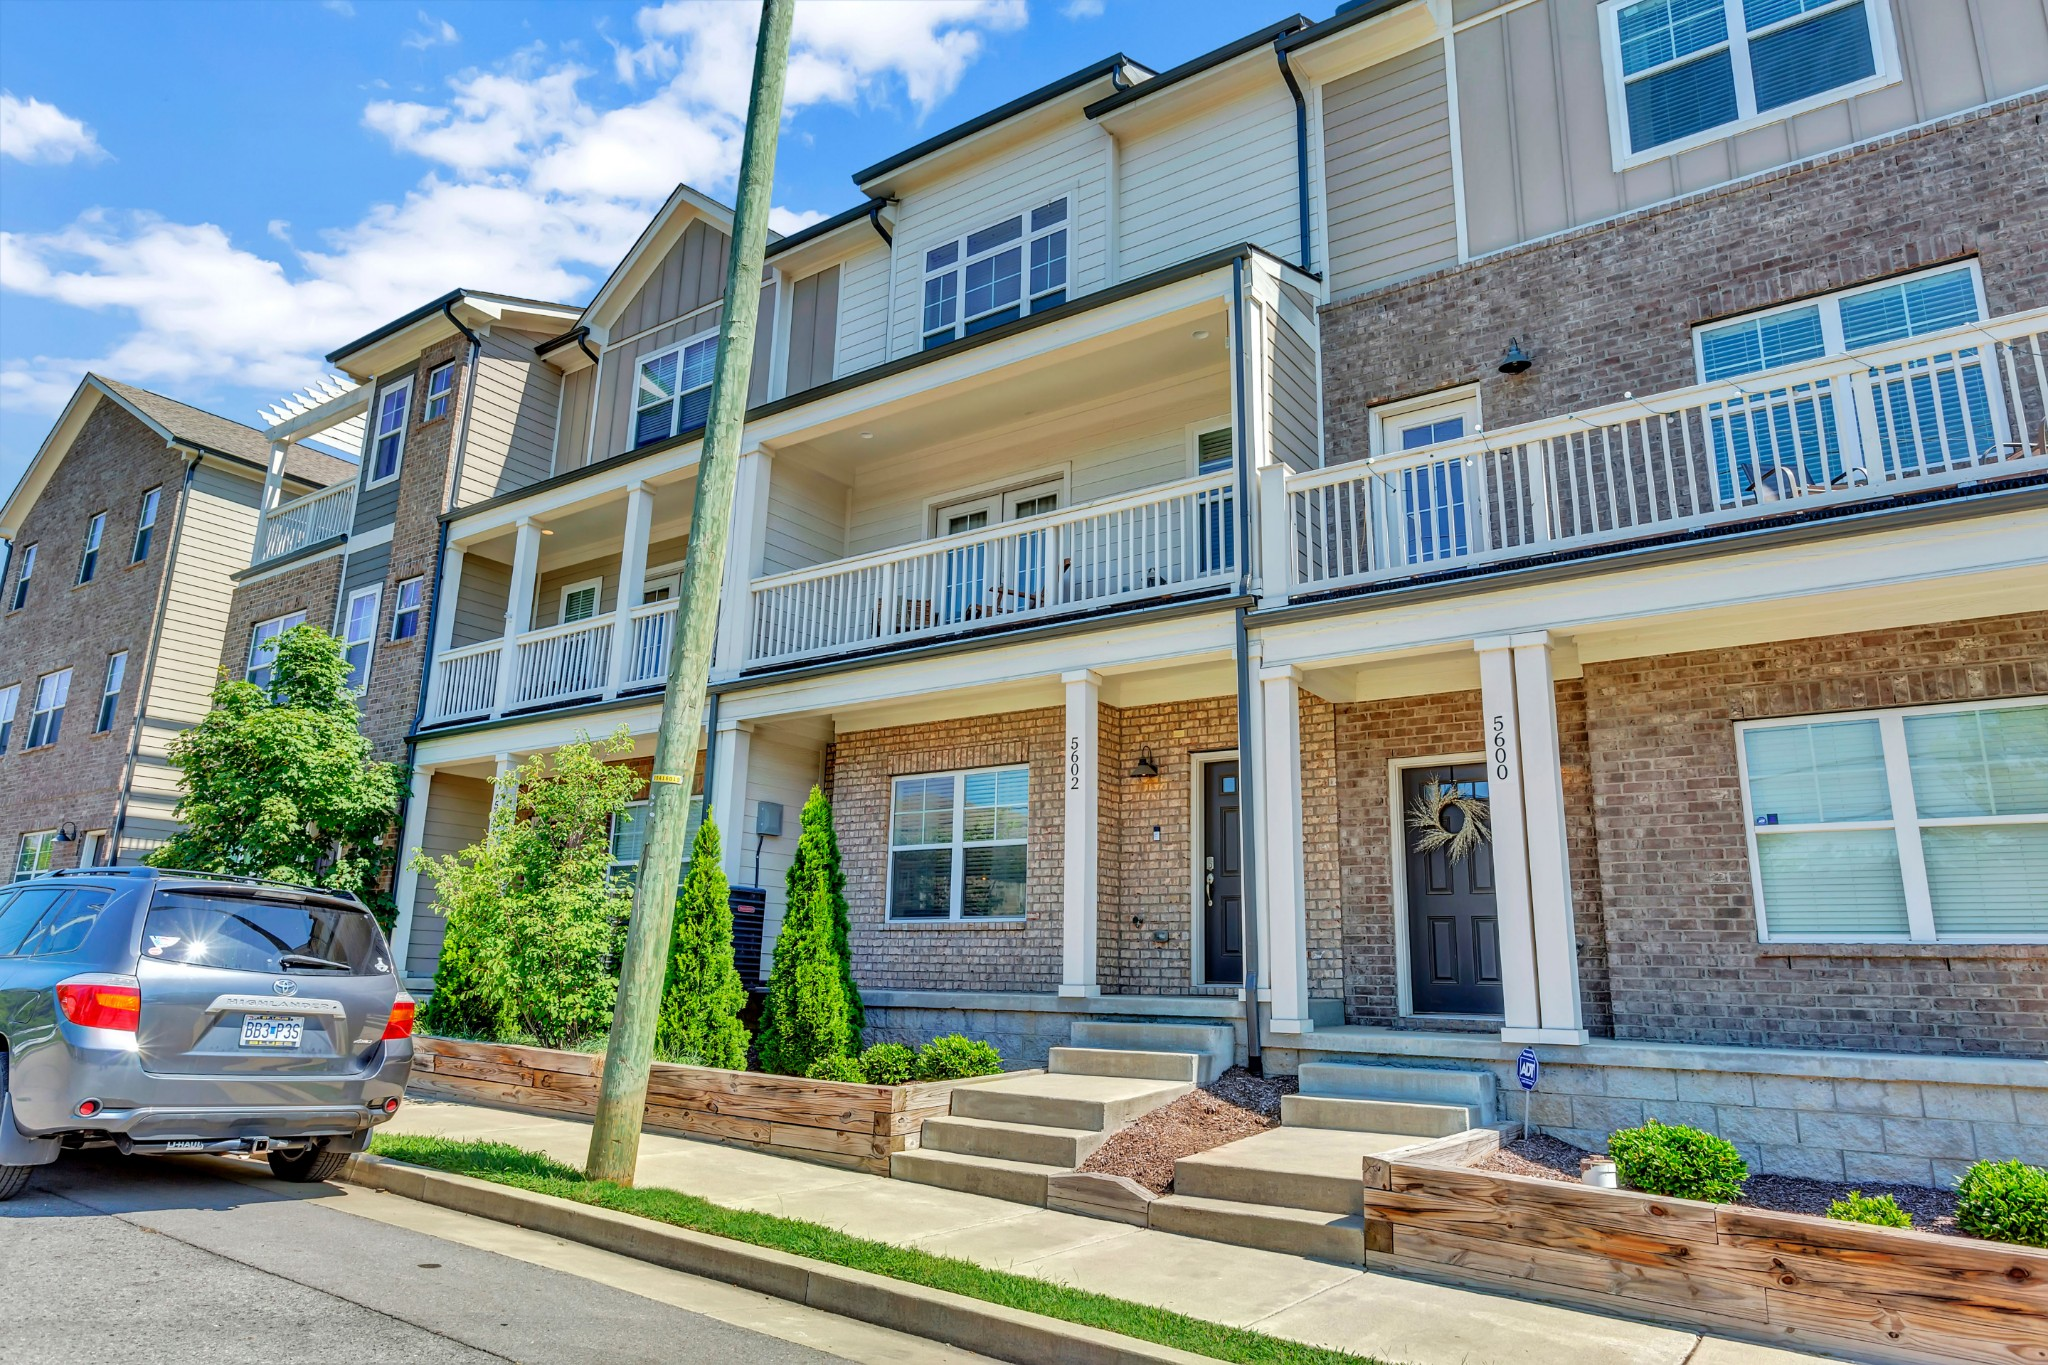 Unique opportunity in the Nations! NOO STRP eligible, zoned CS. 3BR/3.5BA, three story townhome with 2 car rear loading garage in the Kenrow Corner development. Entire second floor is open kitchen/living with balcony. Furniture is negotiable. Professional interior pictures will be taken once seller has moved to new home.